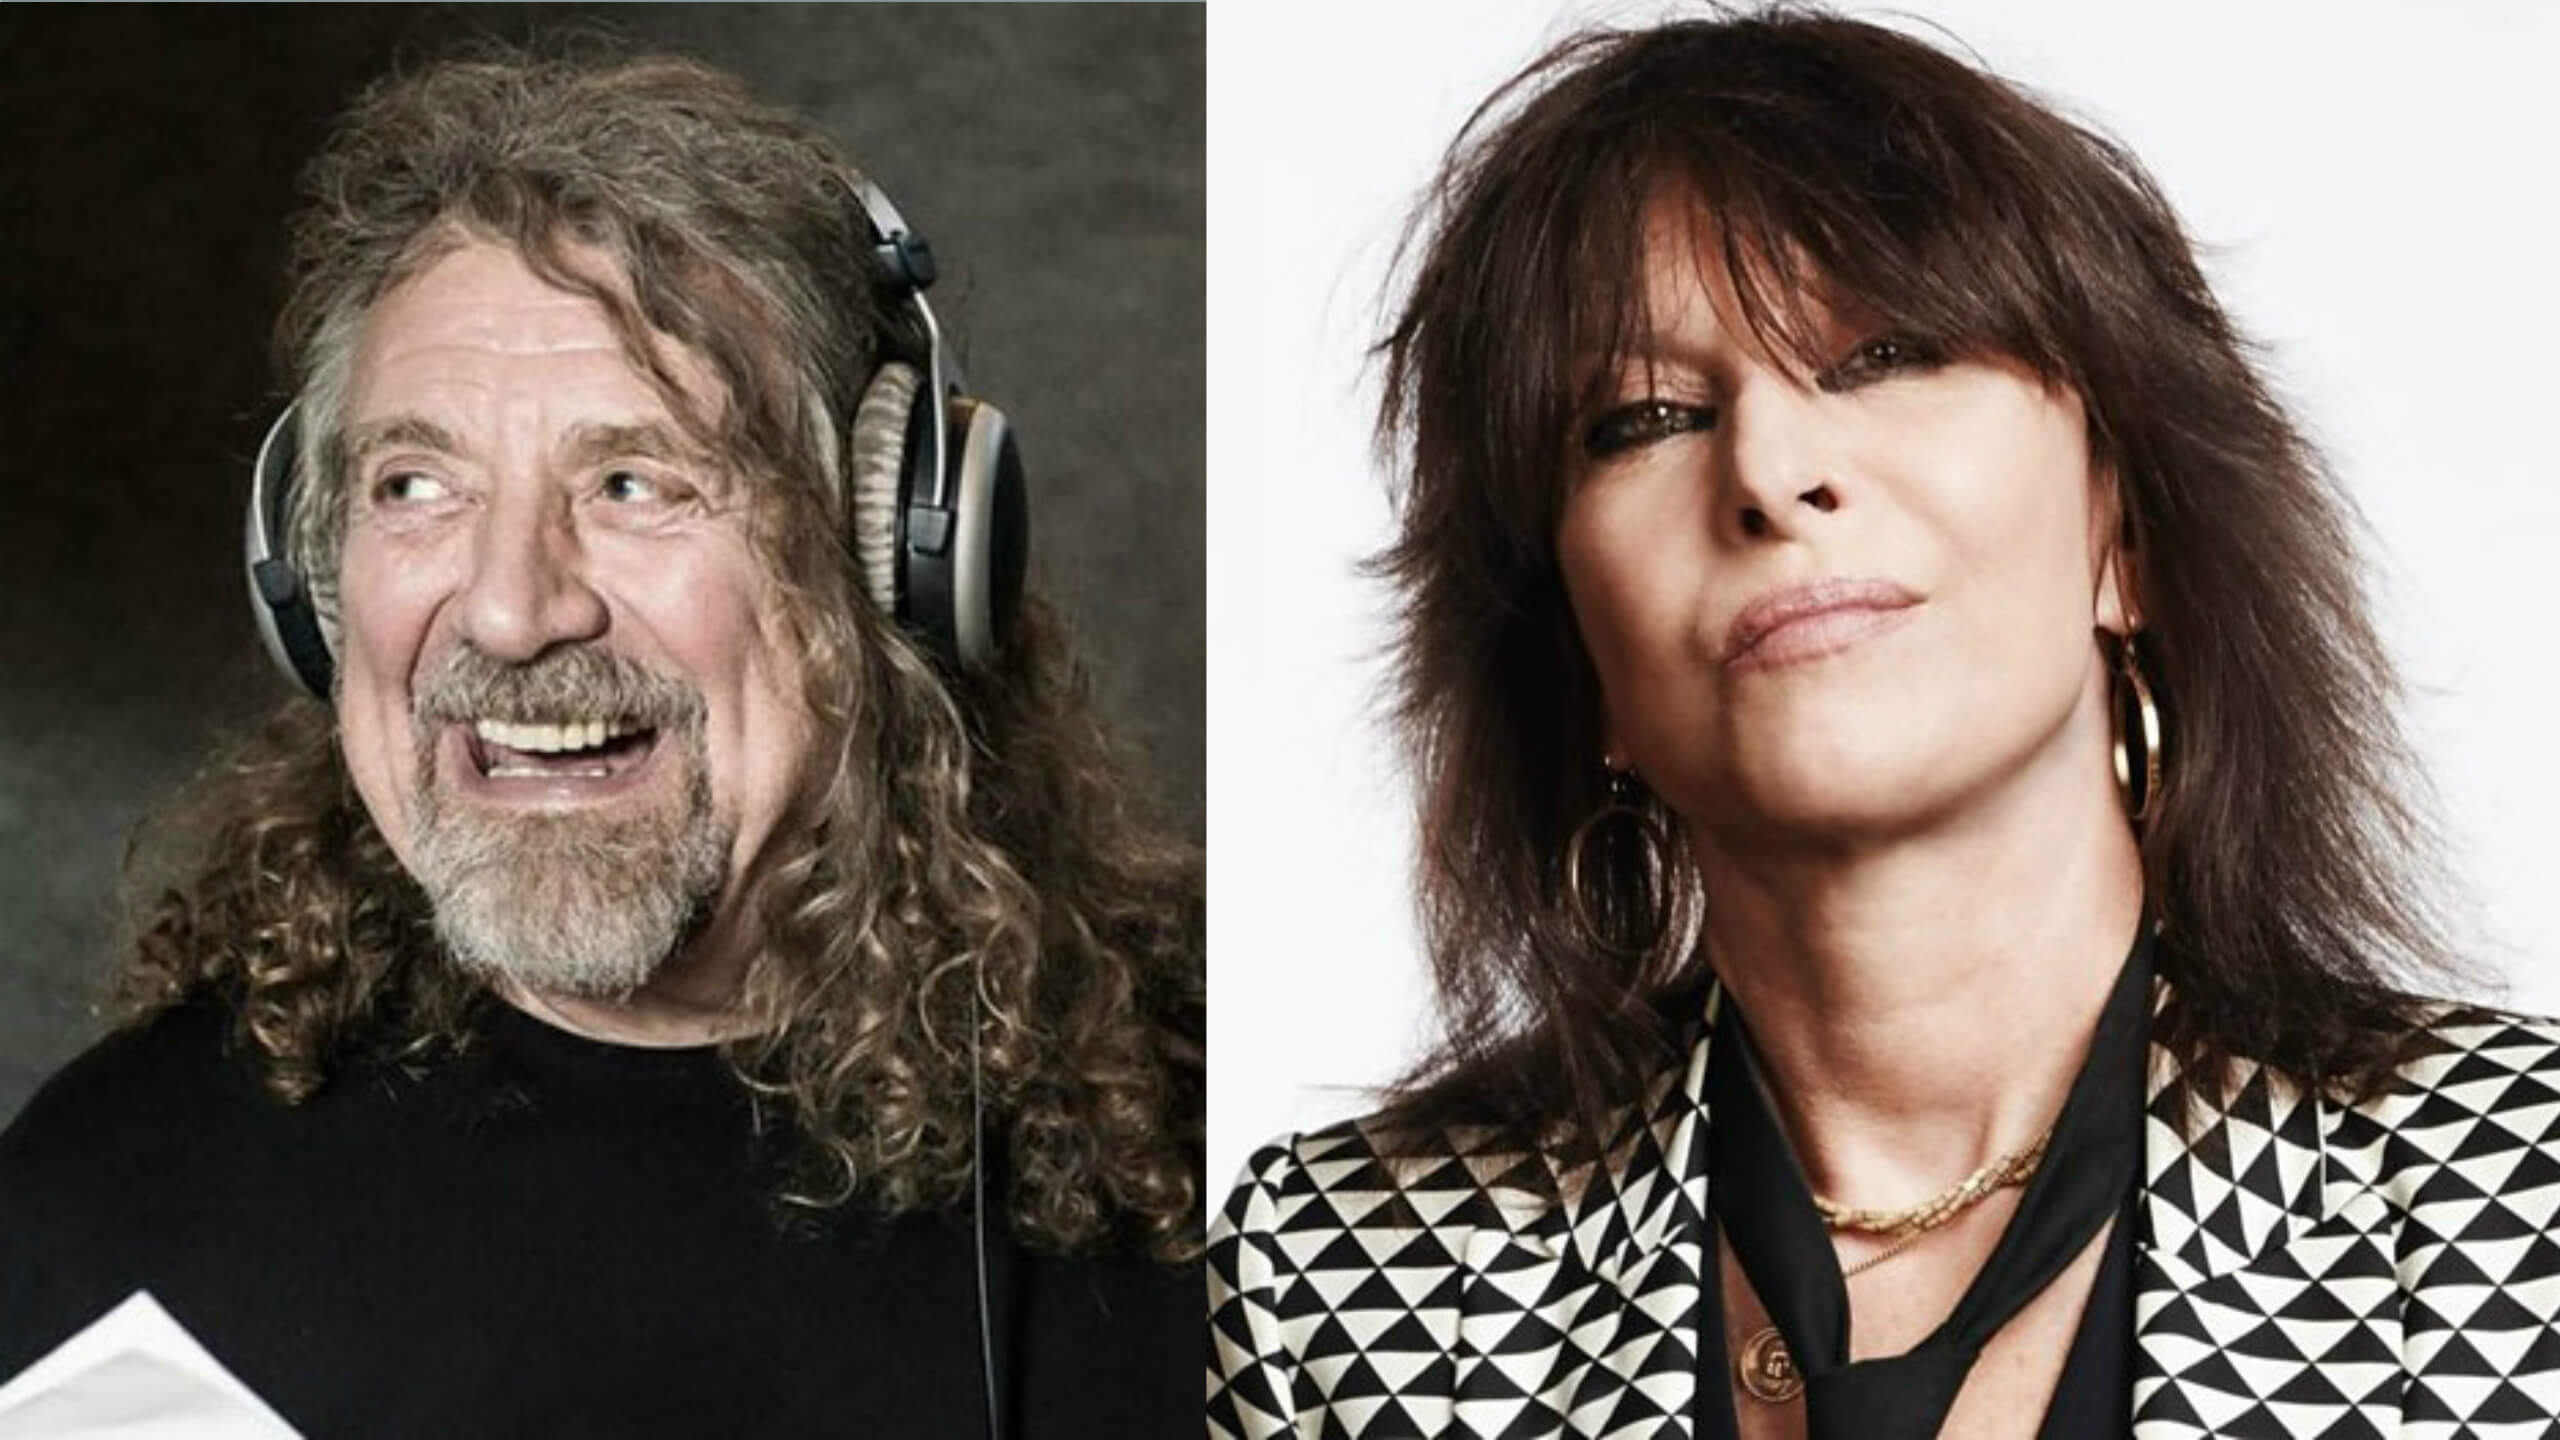 Hear New Robert Plant Song With Chrissie Hynde From The Make Your Own Beautiful  HD Wallpapers, Images Over 1000+ [ralydesign.ml]